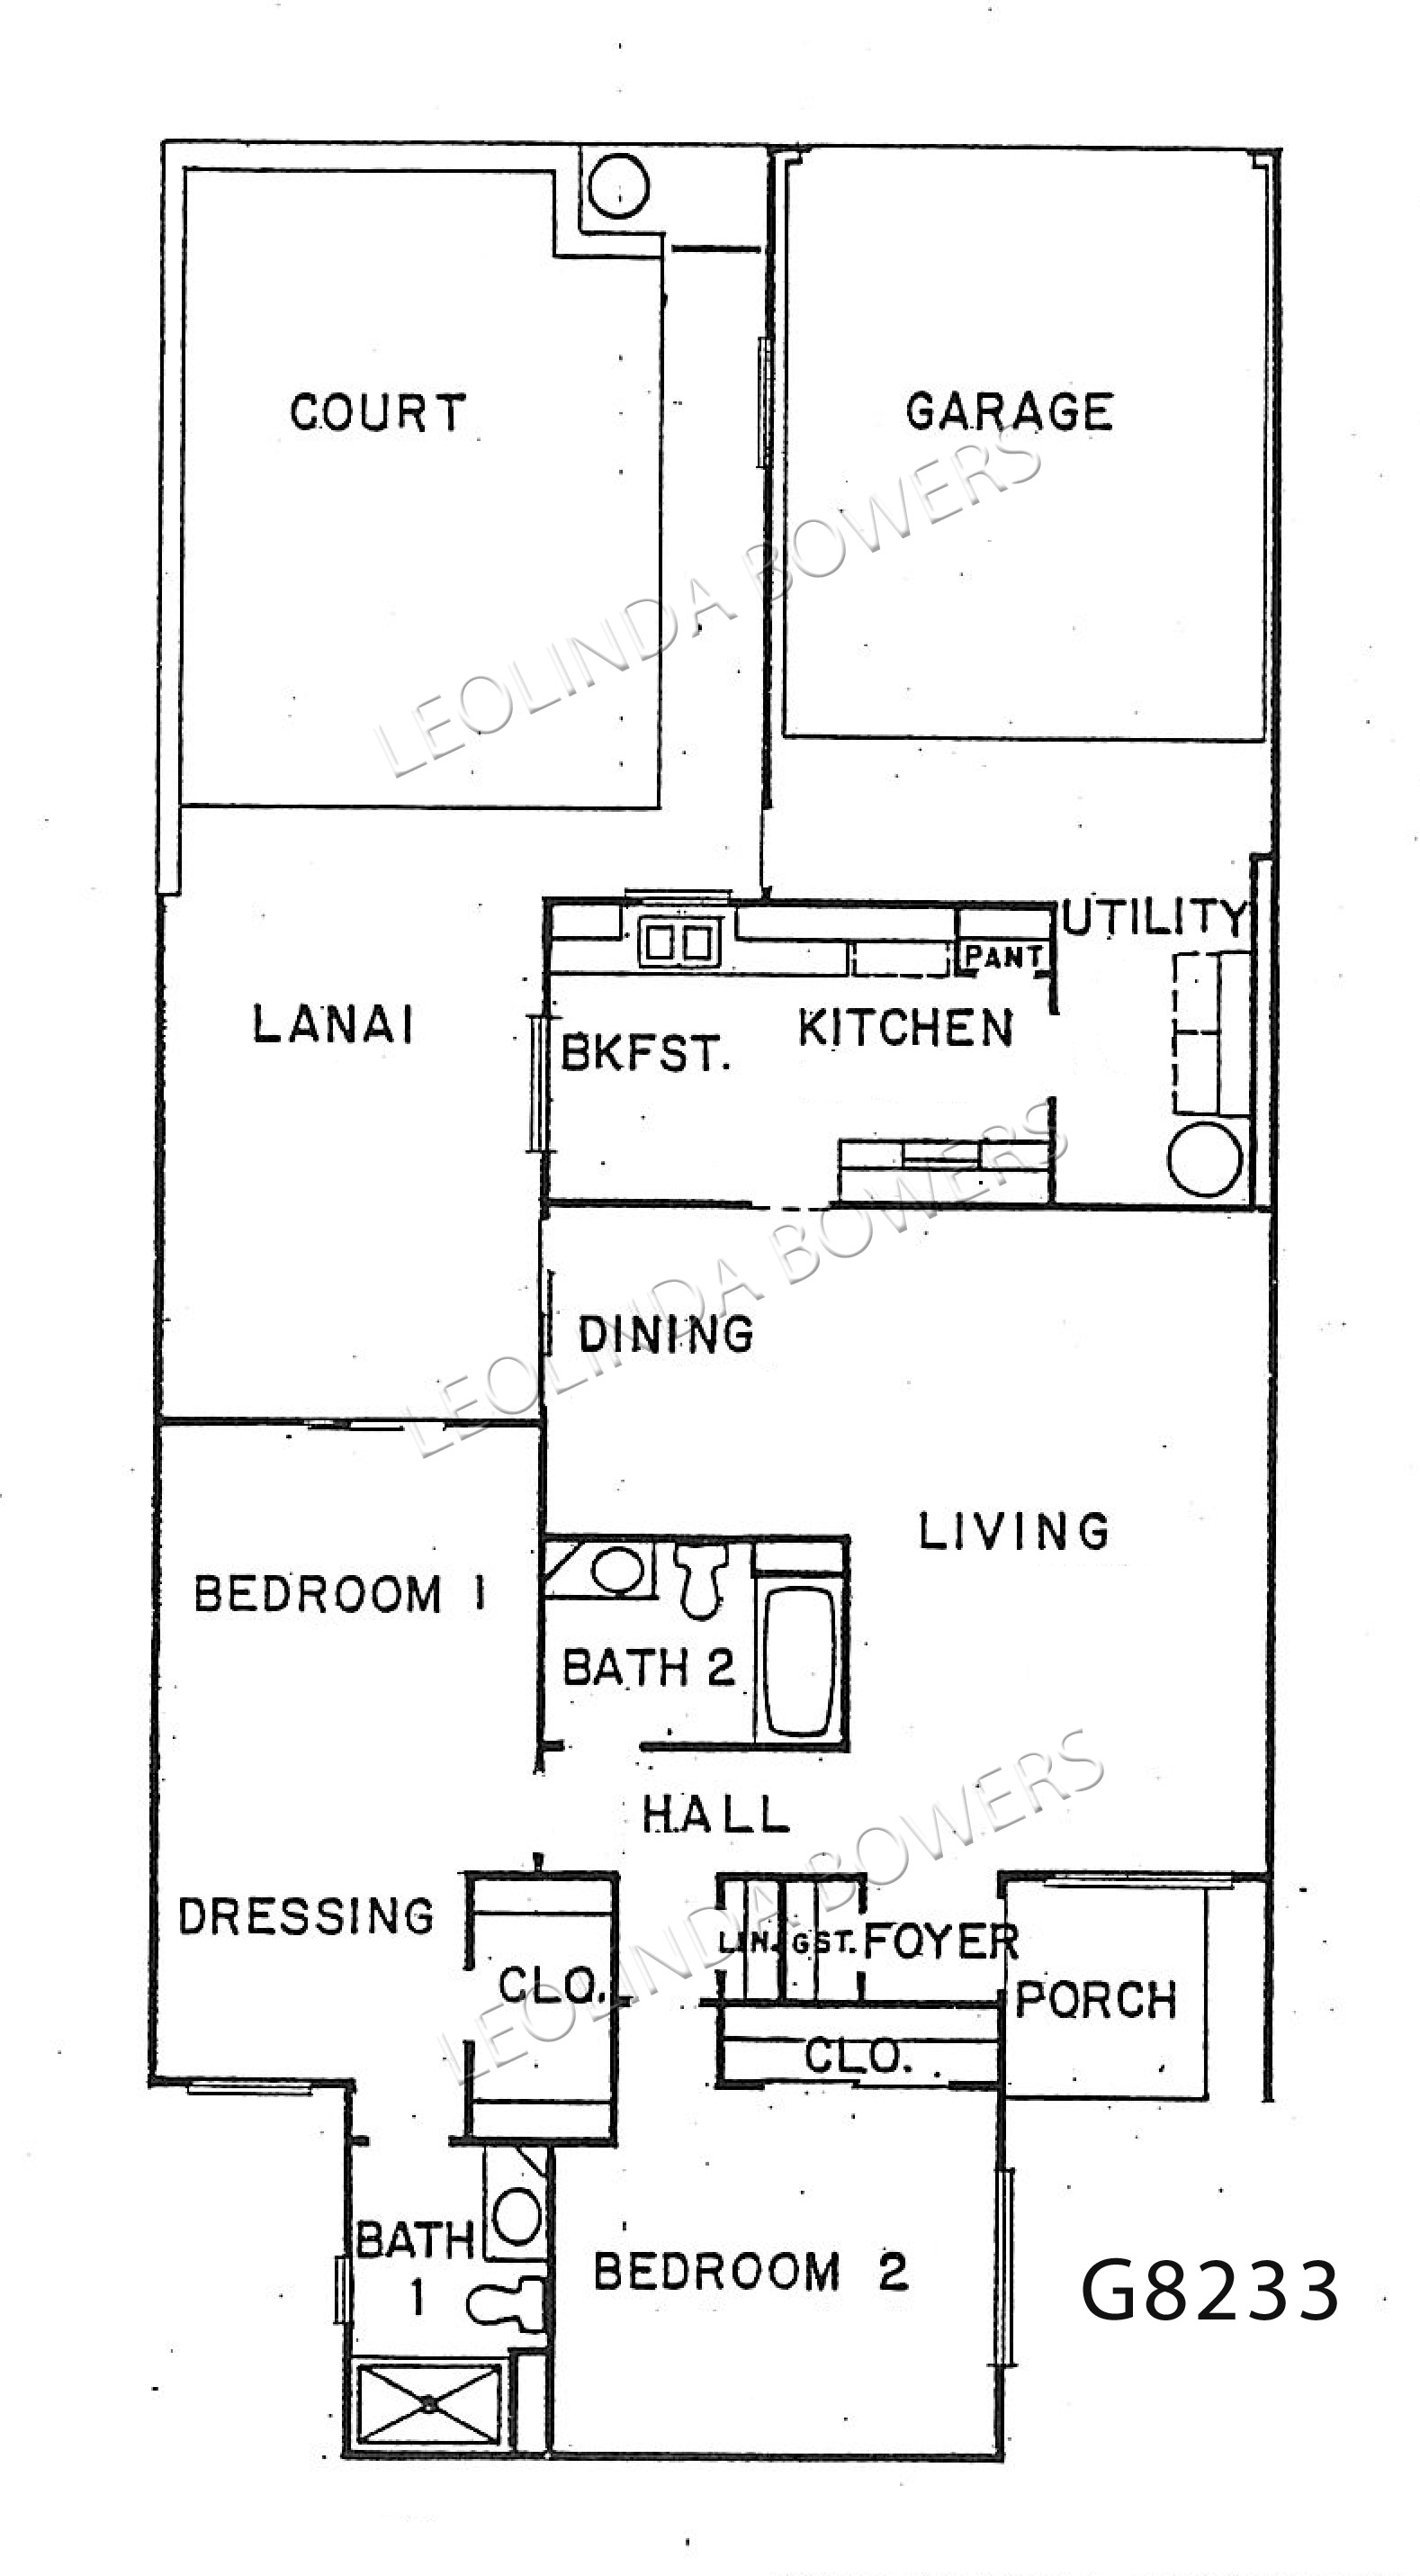 Sun City West garden apartment model G8233 floor plan